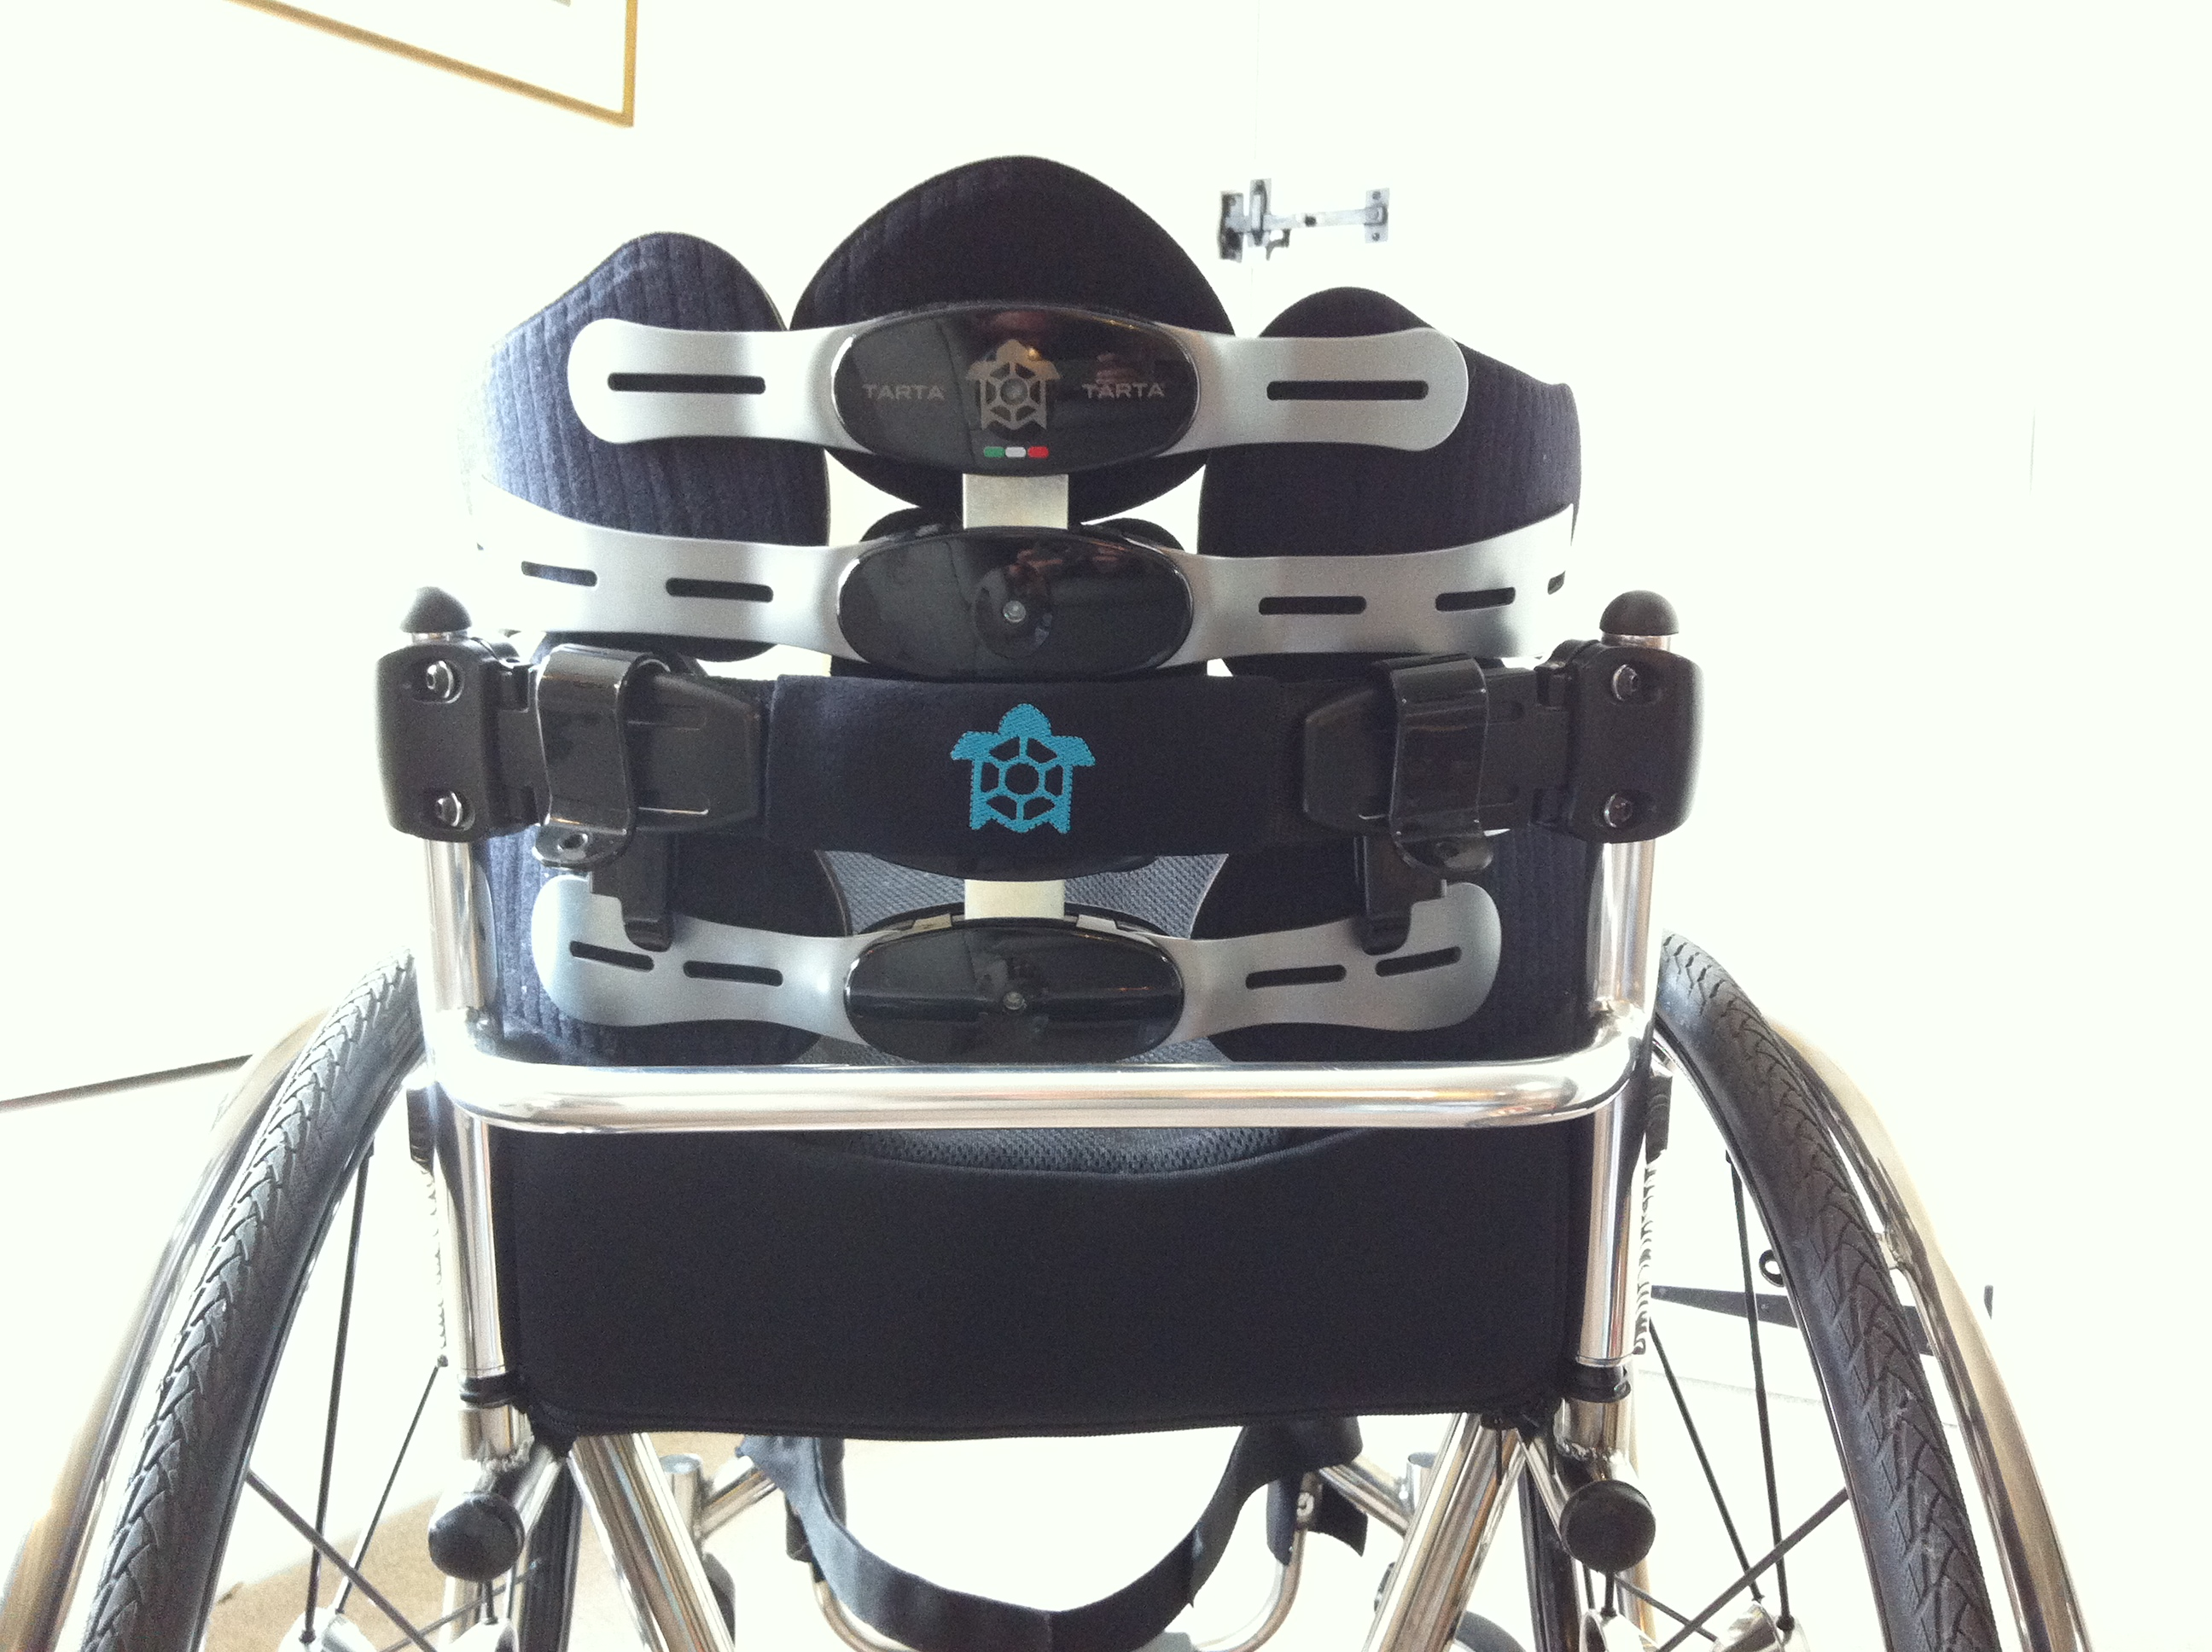 TARTA wheelchair backrest BACK VIEW (Full Size)